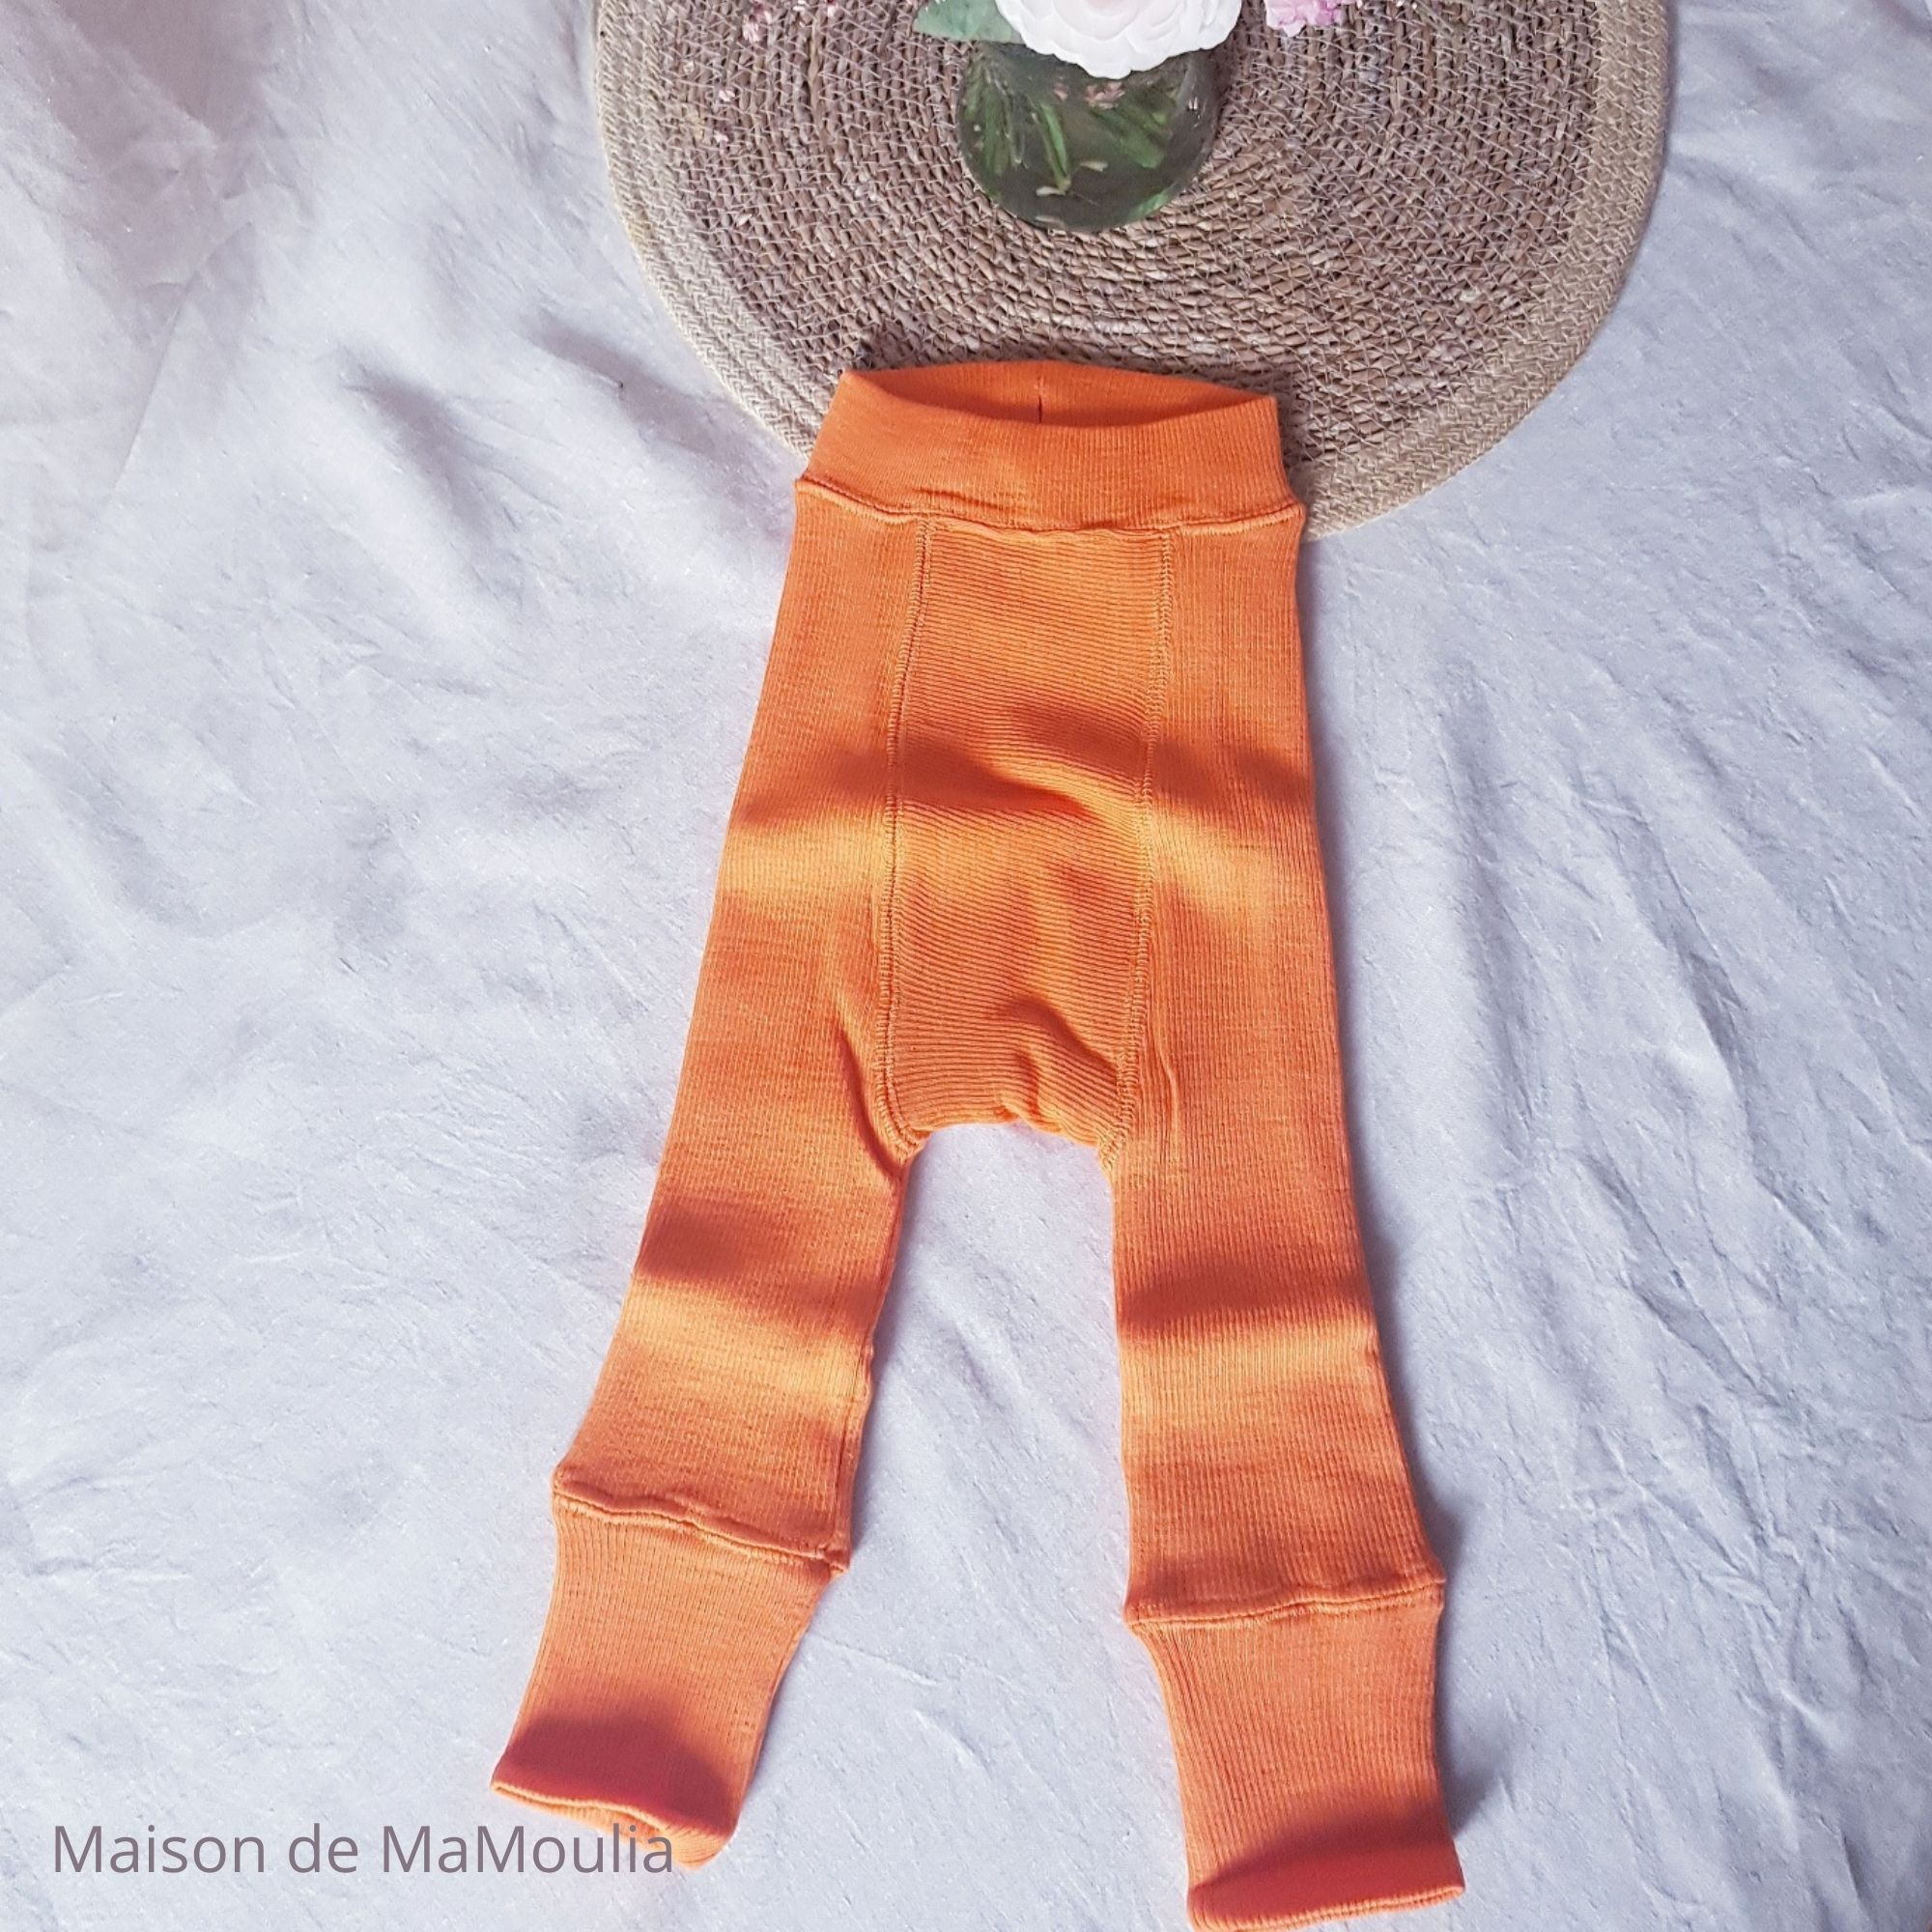 MANYMONTHS - LONGIES Pantalon Évolutif - 100% laine mérinos - Réversible - ORANGE/ROSE